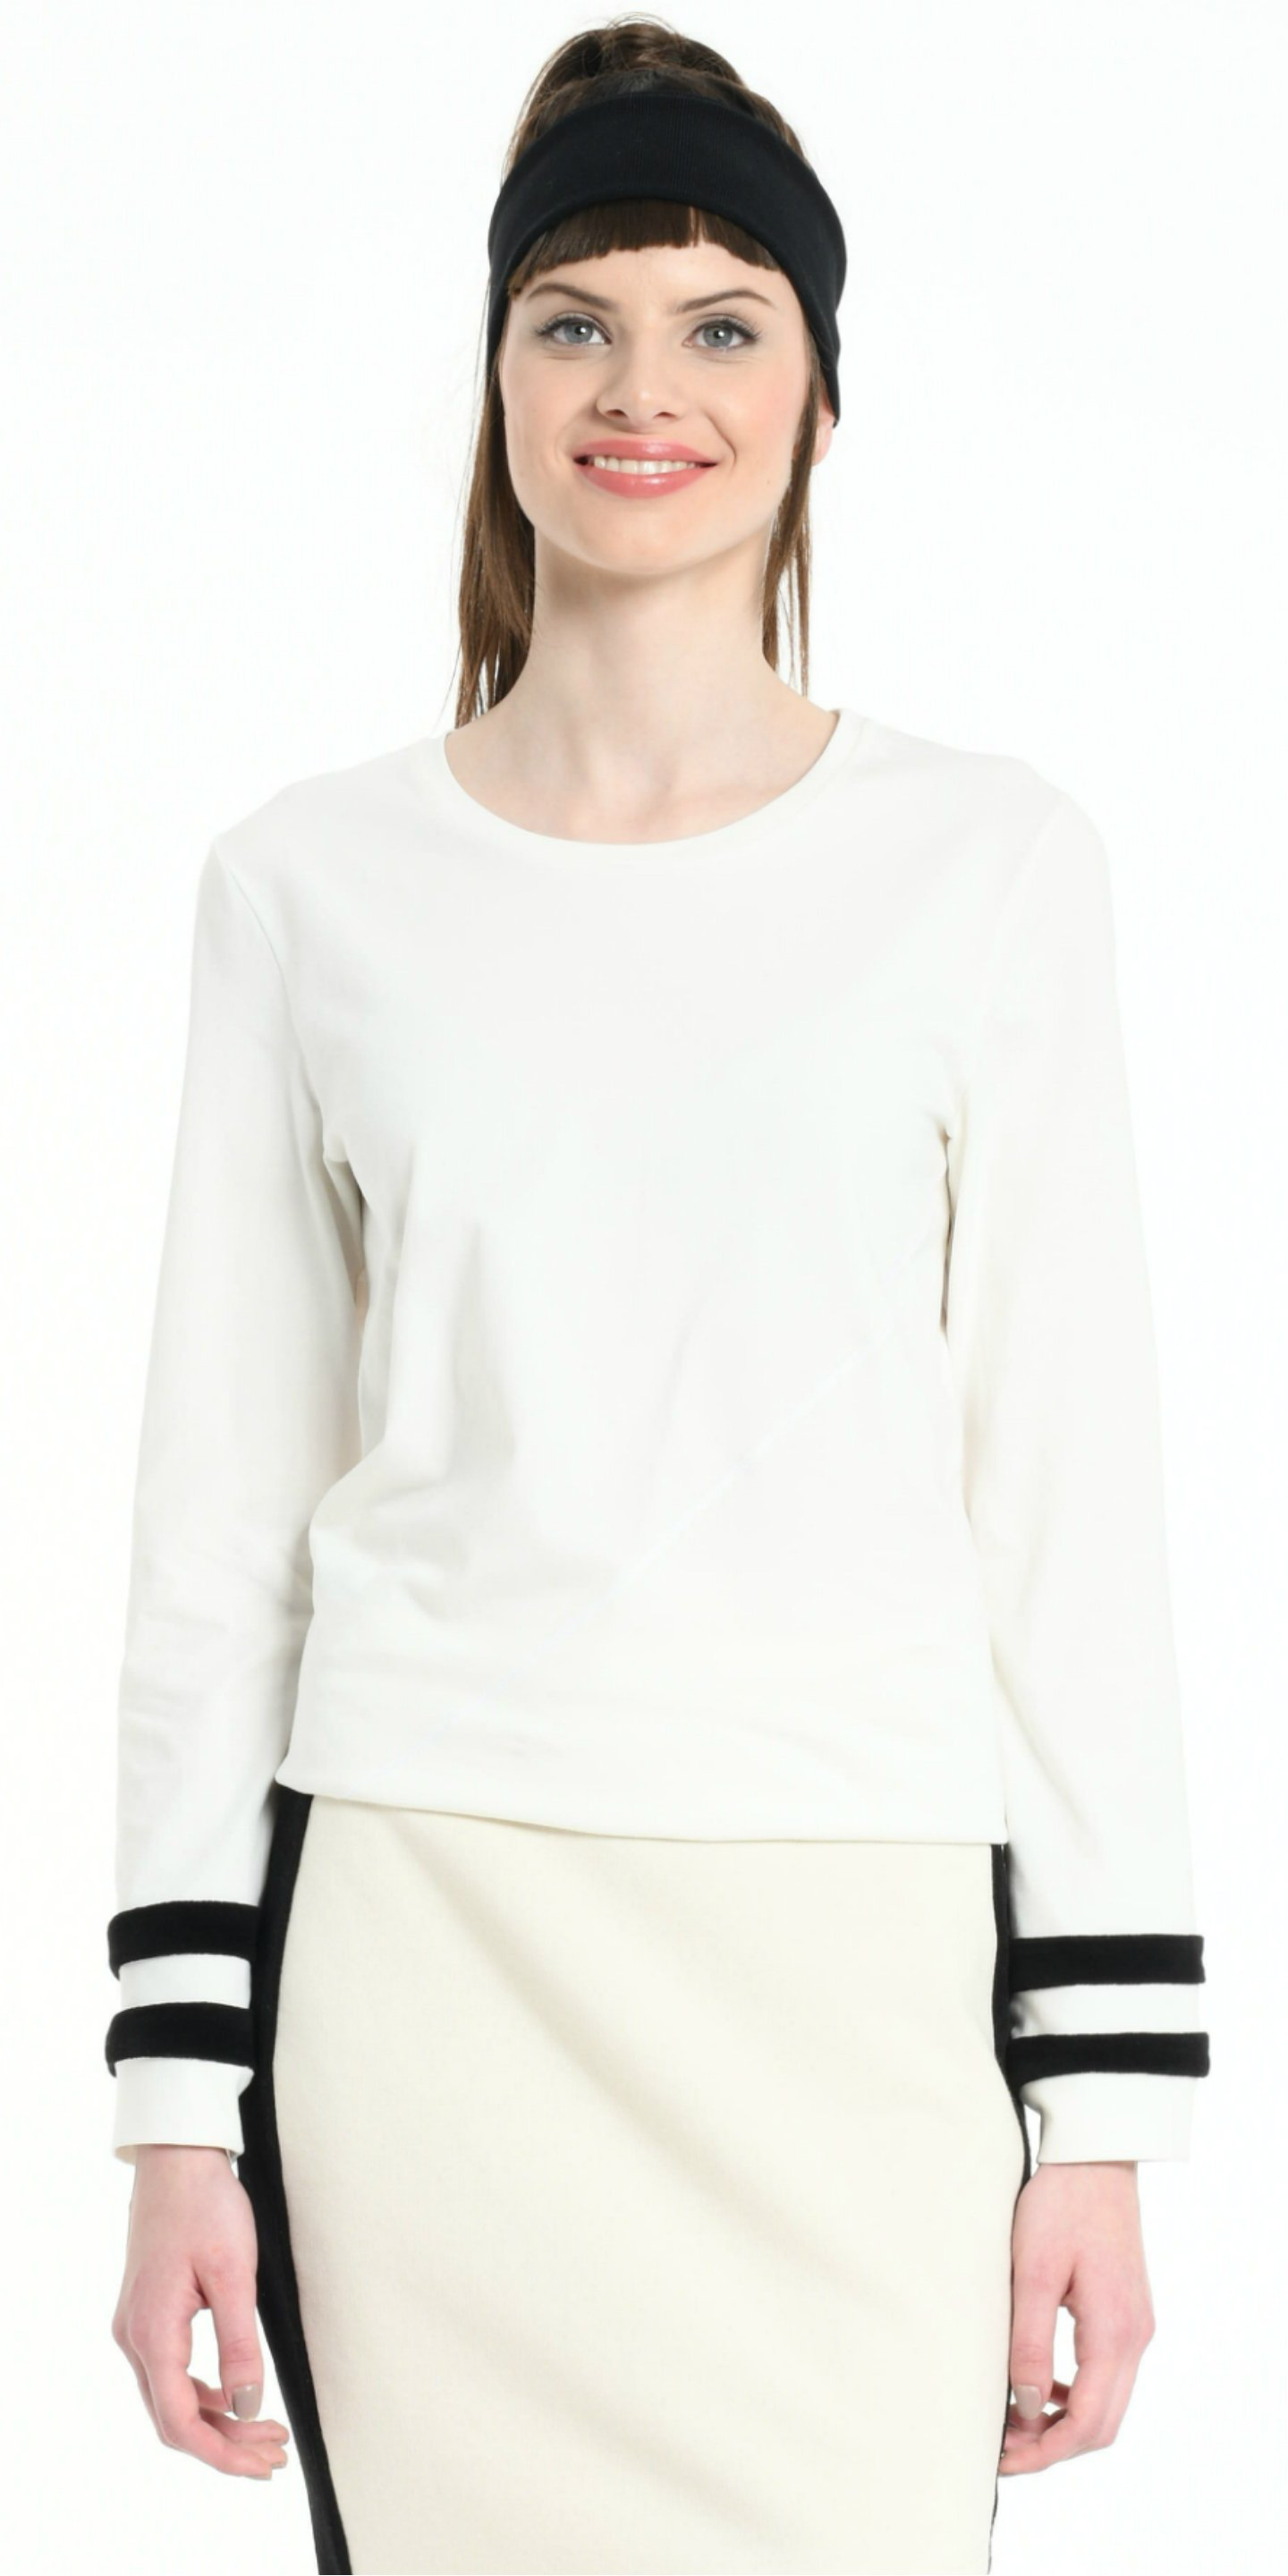 TEE SHIRT LONG SLEEVES OFF WHITE WITH BLACK STRIPS from BEARD & FRINGE